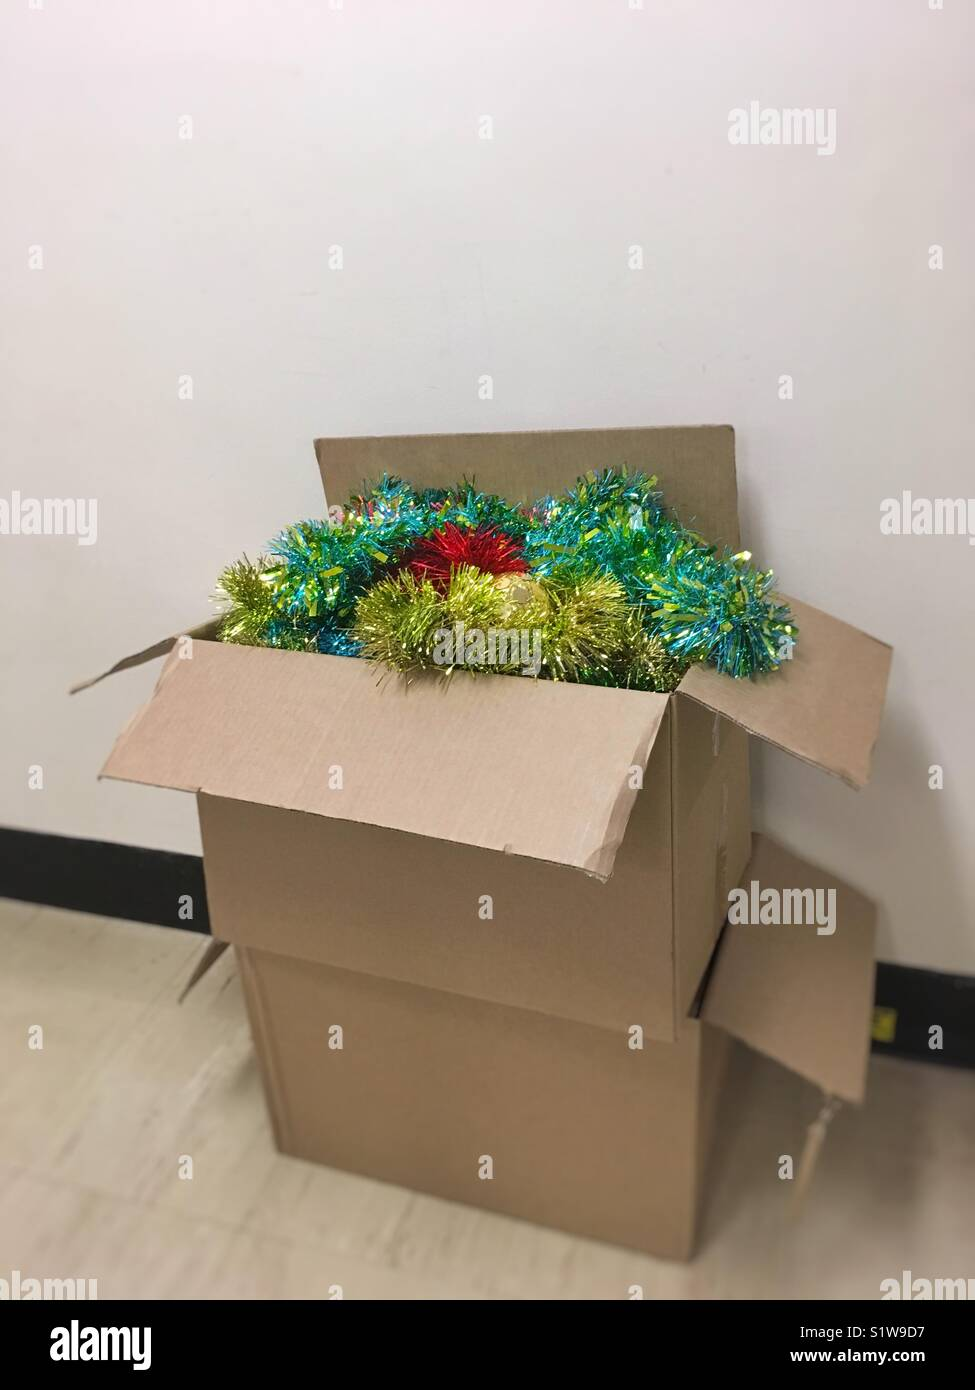 Christmas tinsel being packed away after Christmas. - Stock Image